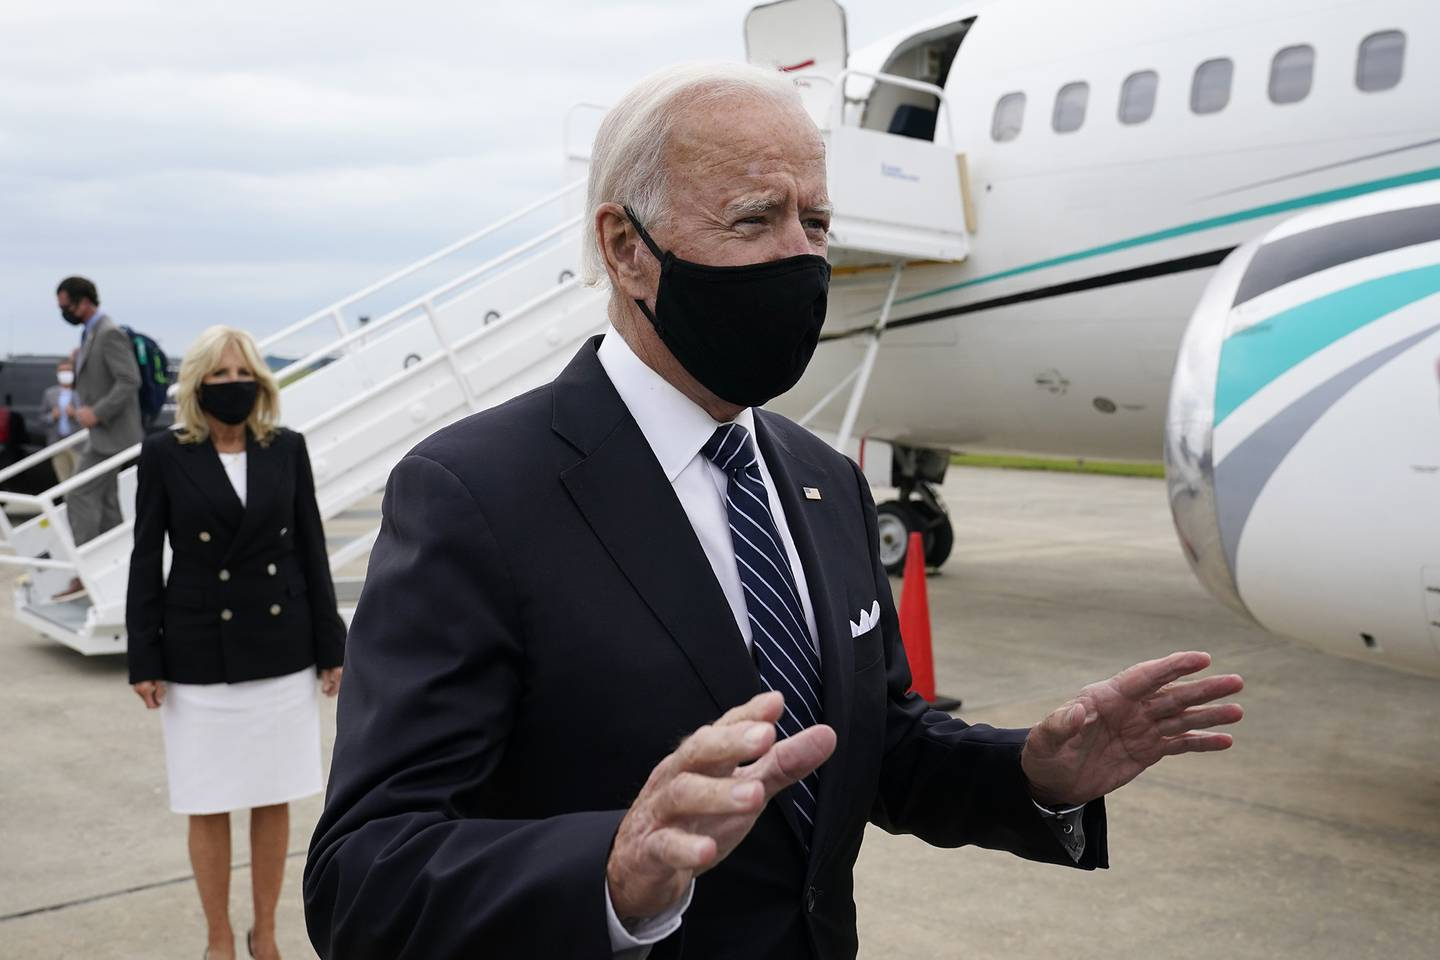 Democratic presidential candidate and former Vice President Joe Biden speaks with reporters after he and his wife Jill Biden, back left, stepped off a plane at New Castle Airport in New Castle, Del., Friday, Sept. 11, 2020.